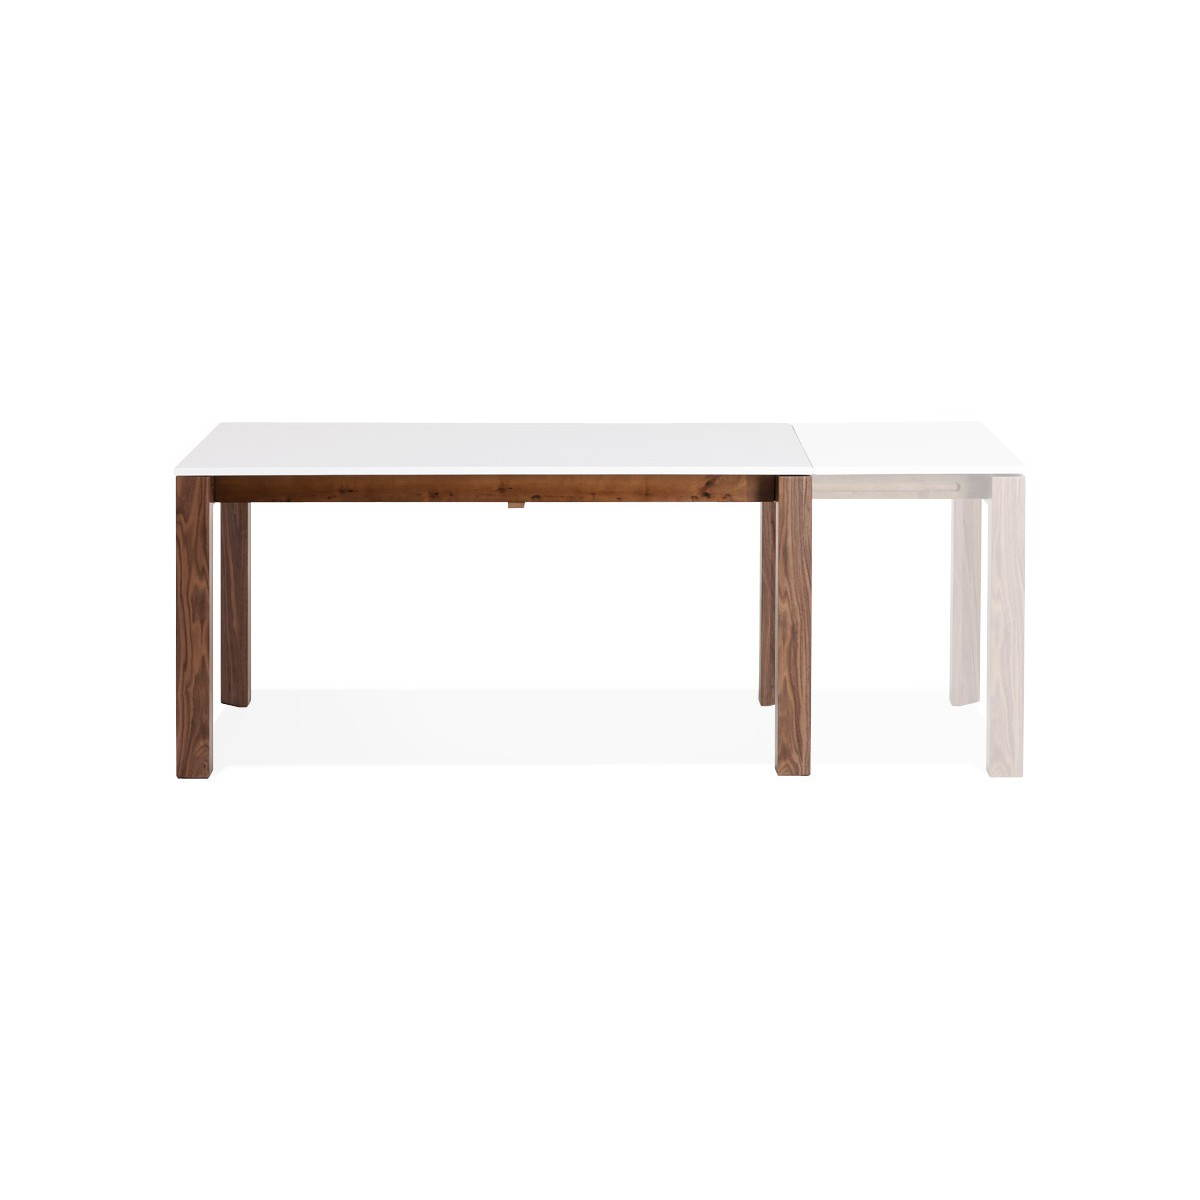 Table rectangulaire avec rallonge maison design for Table rectangulaire a rallonge